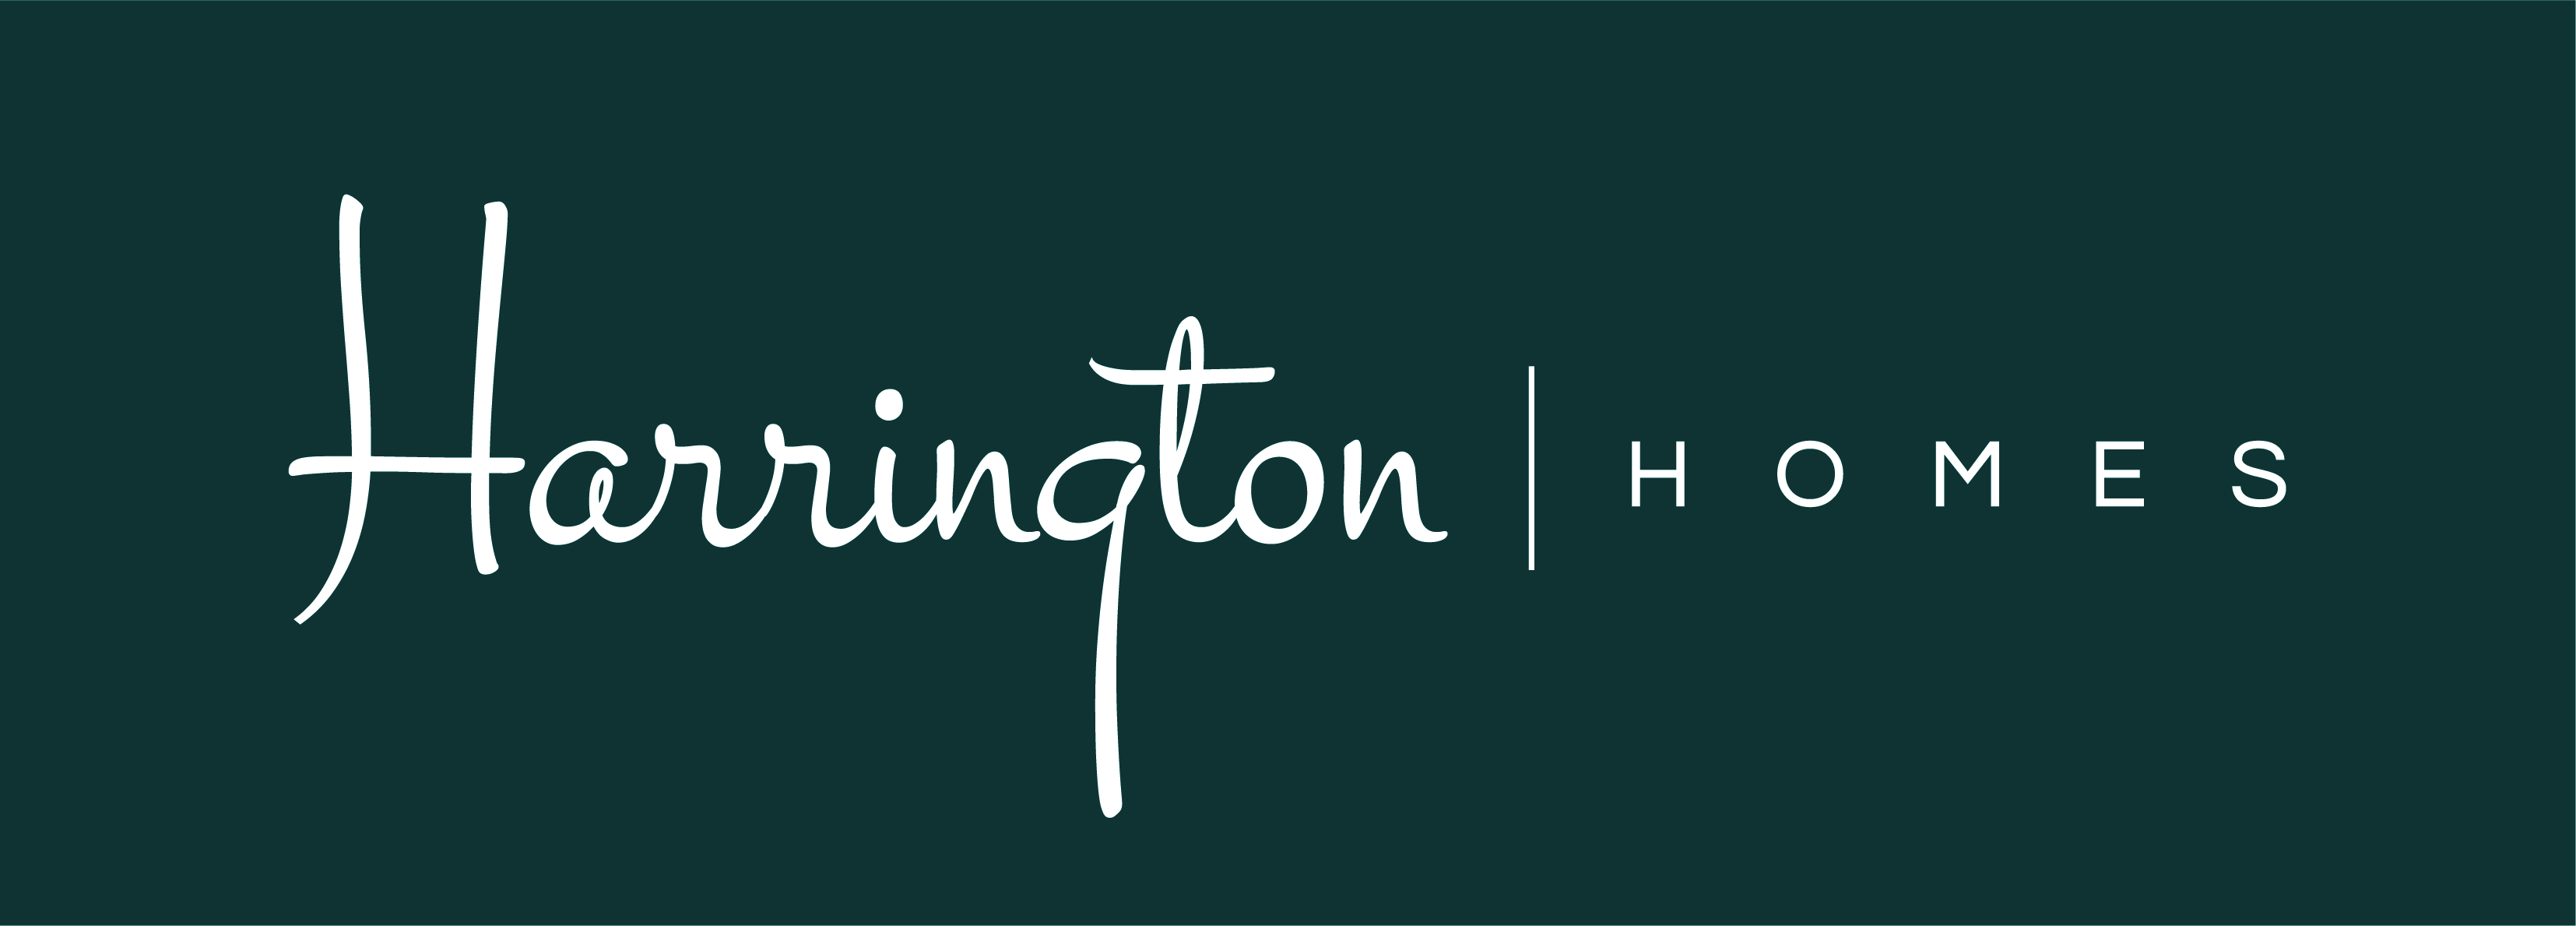 We would Like to welcome Harrington Homes